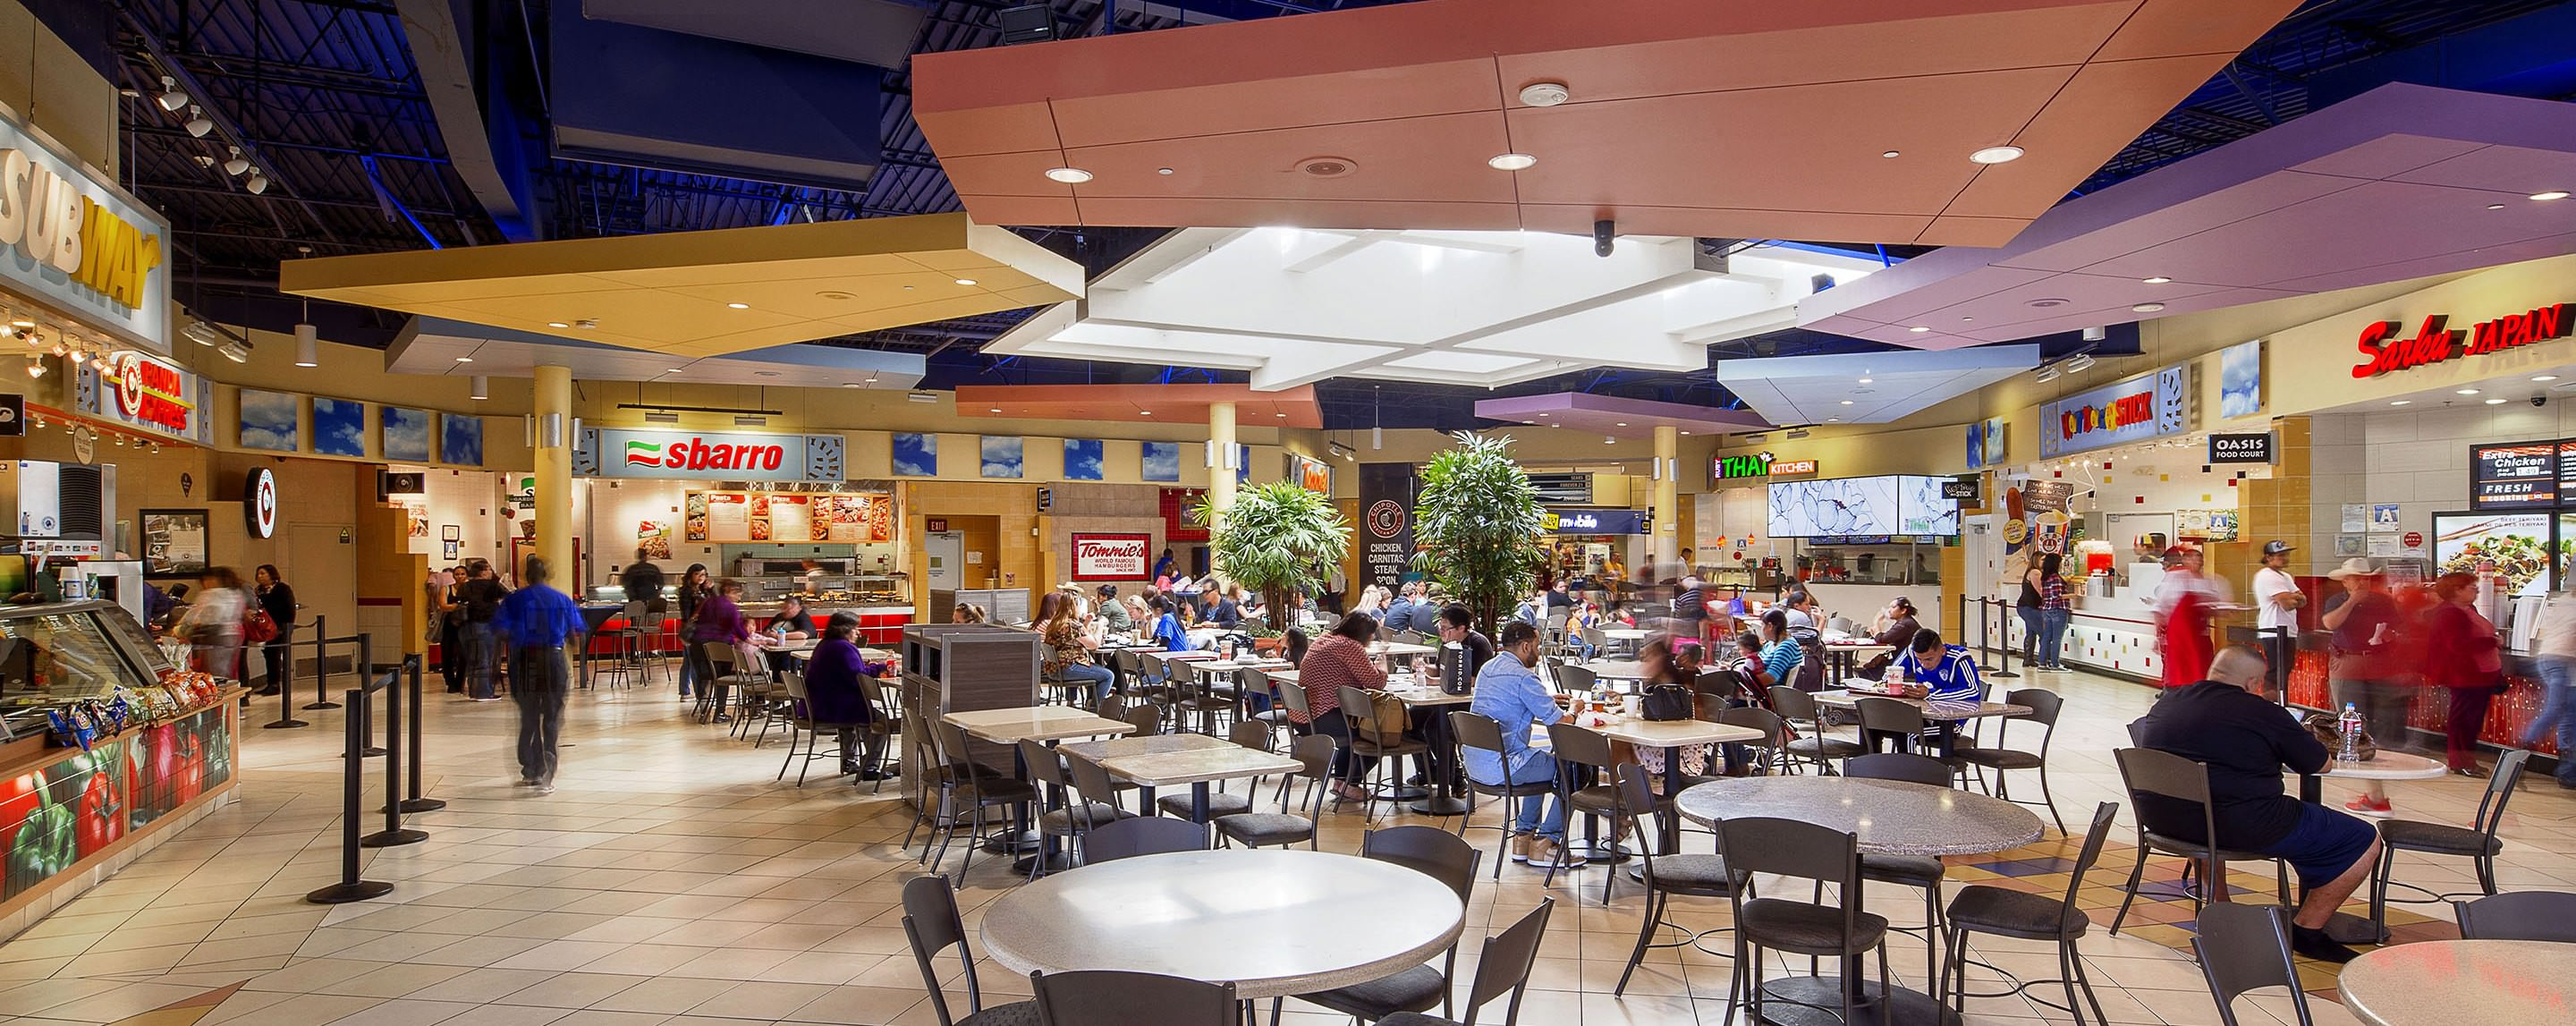 Shoppers sit and eat in the Valley Plaza food court where there is ample seating available for guests.